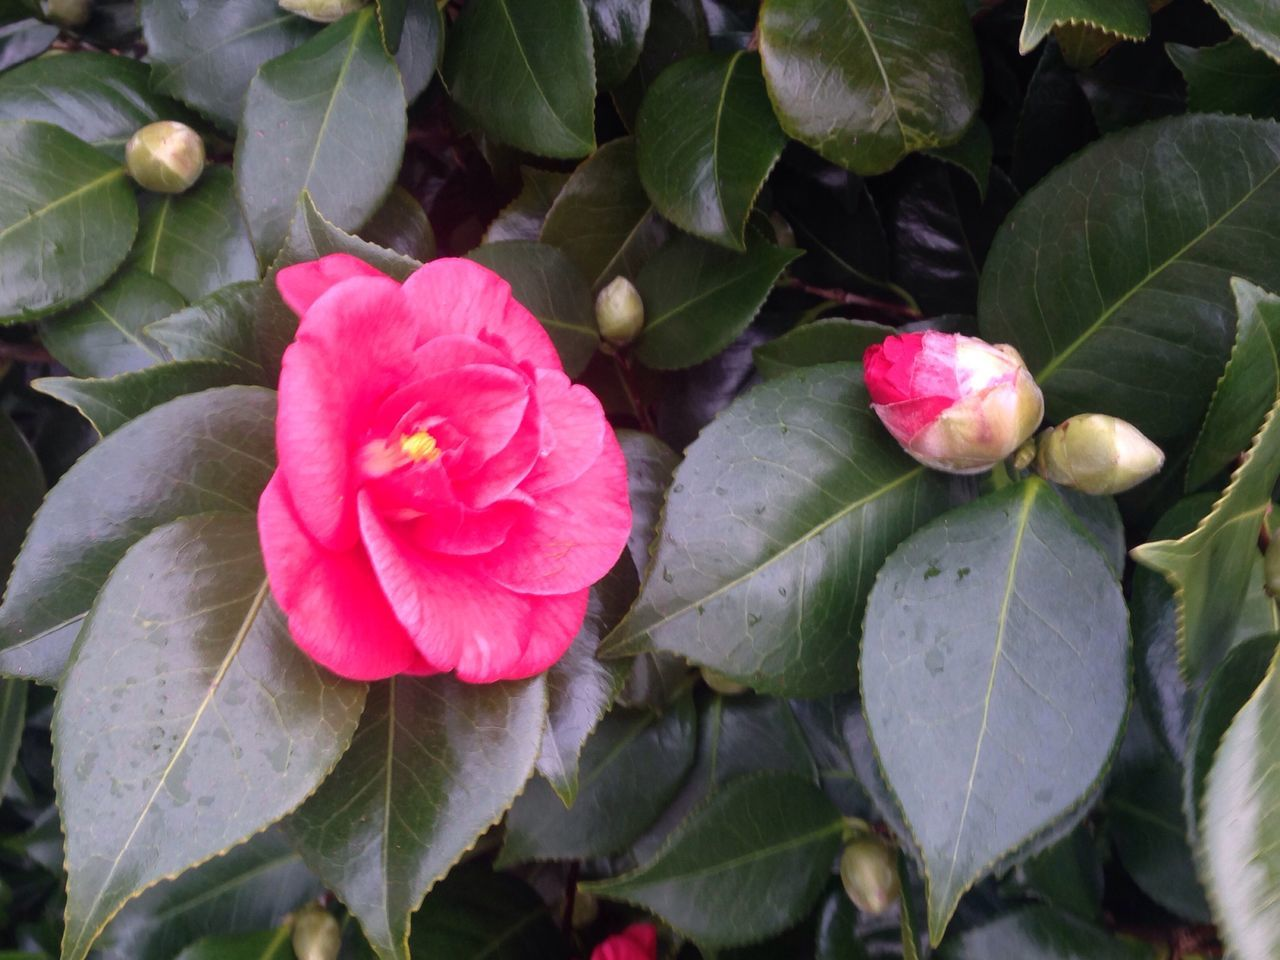 Flower Pink Color Petal Growth Fragility Nature Beauty In Nature Flower Head Plant Leaf Freshness Close-up Outdoors No People Blooming Day Bud Budding Budding Flower